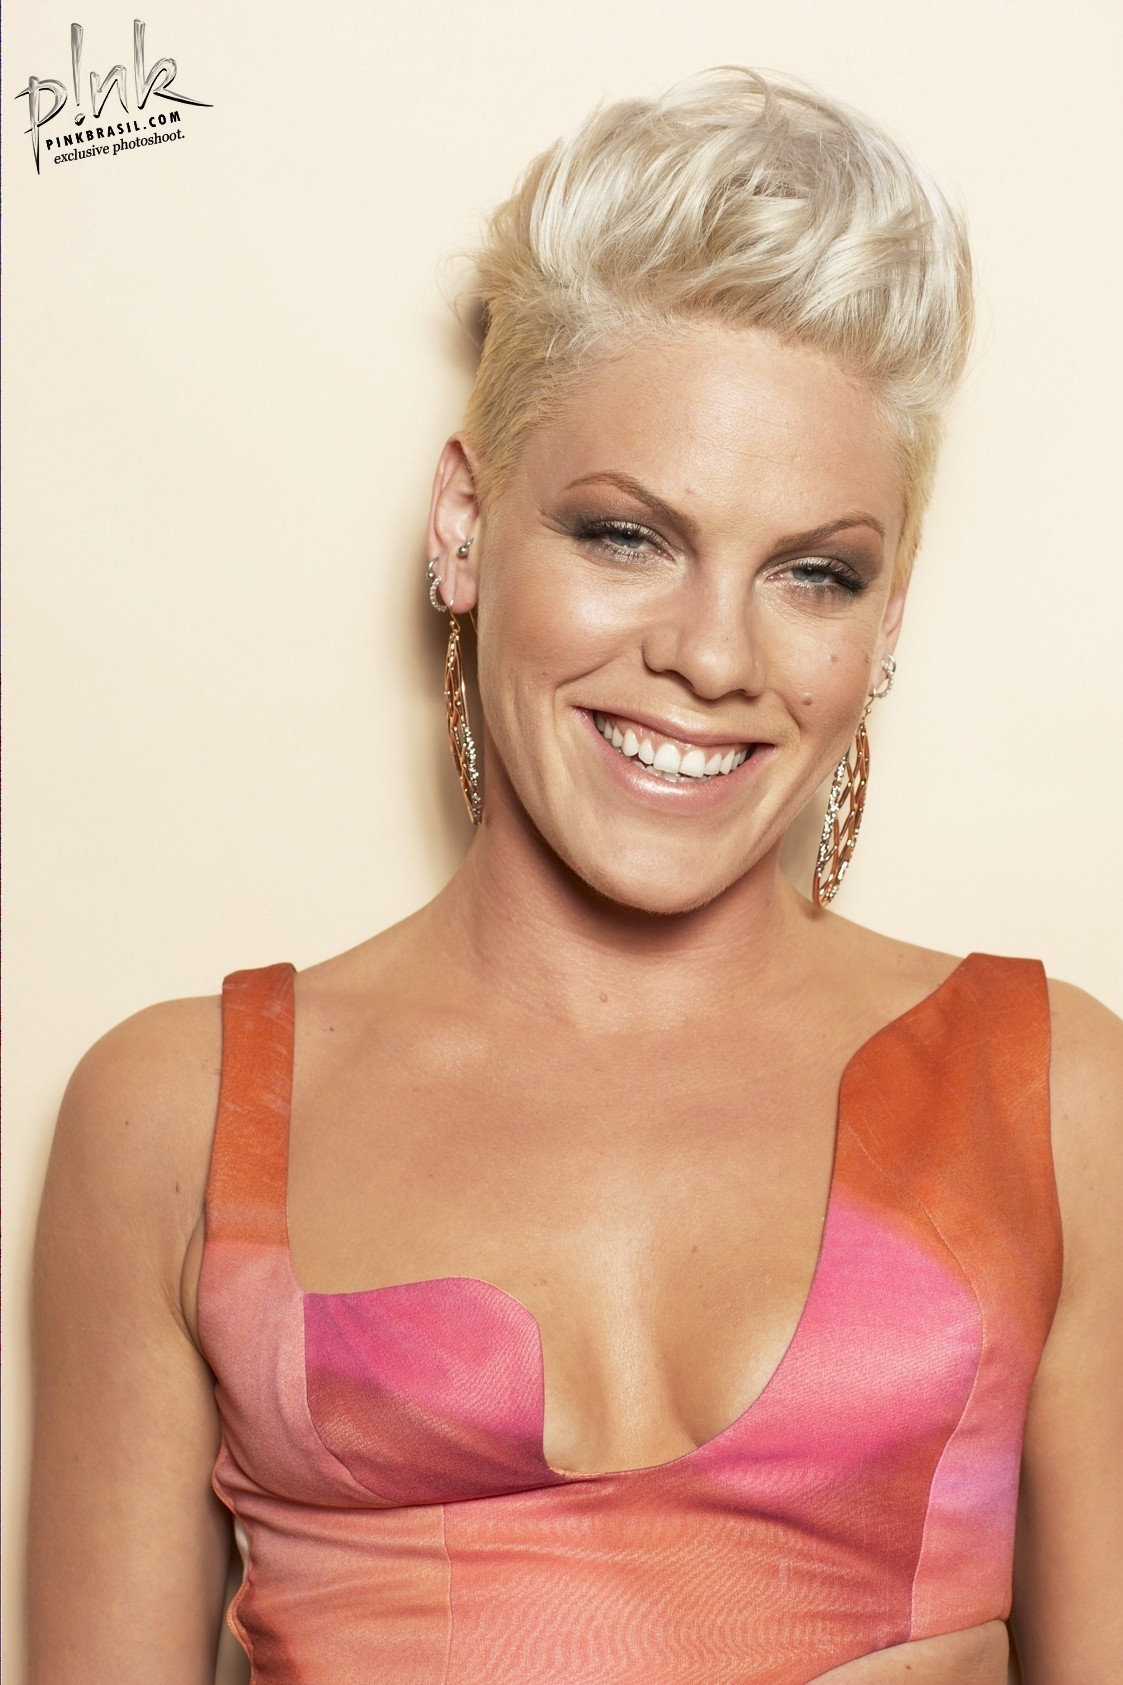 P!nk - Pink Photo (17651045) - Fanpop